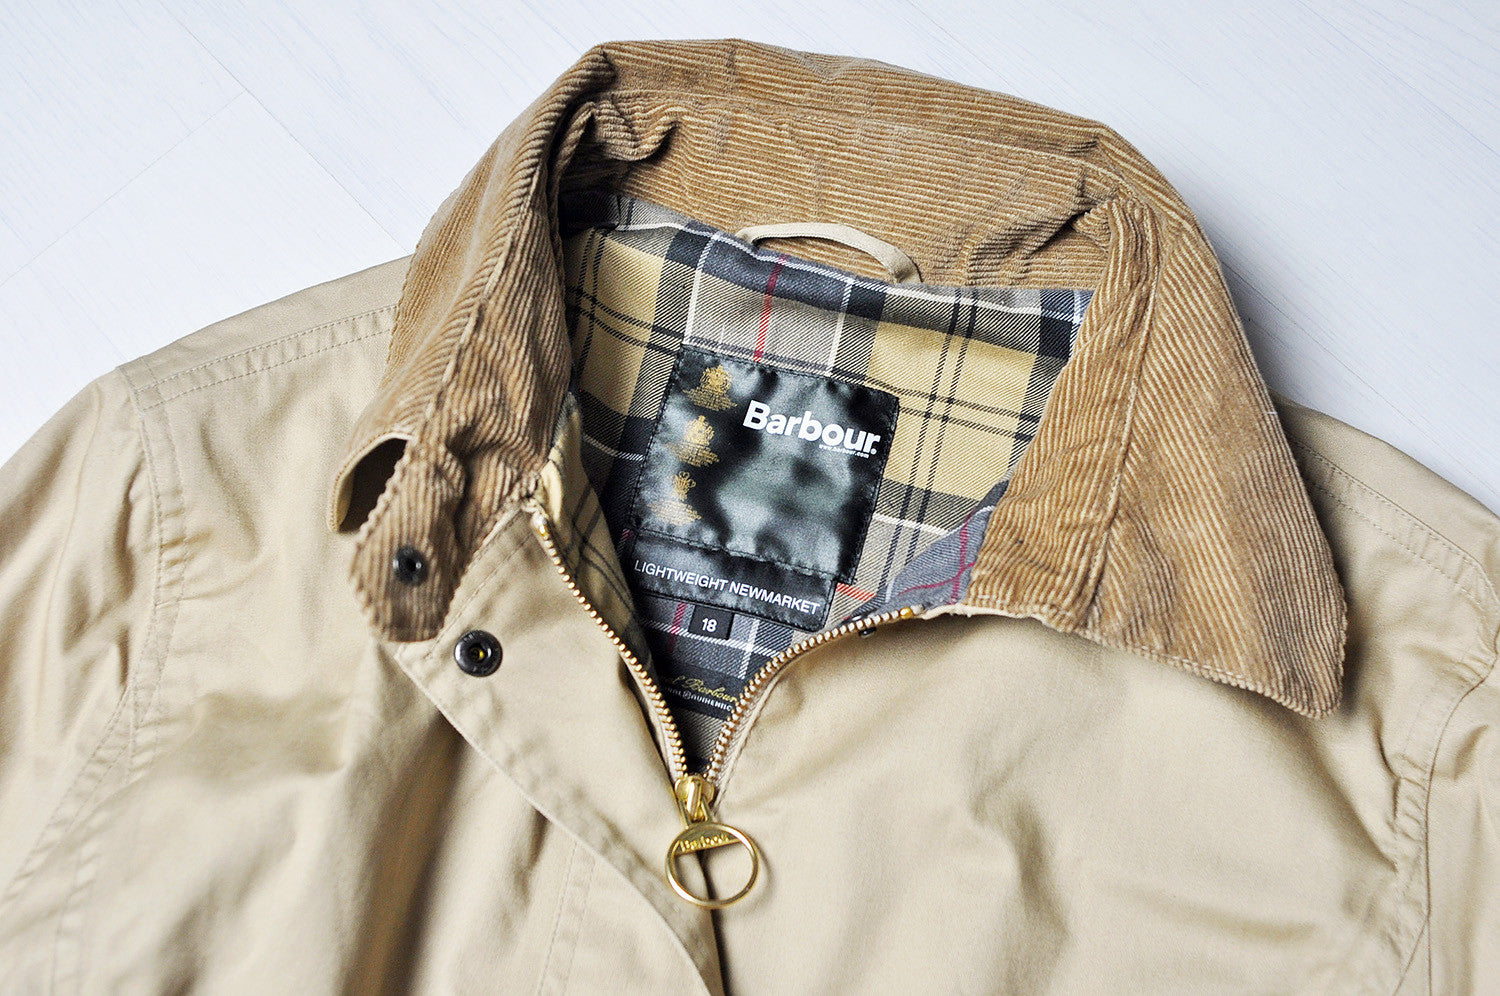 Vintage Original Barbour Tartan Tanned New Market Hunting Lightweight Jacket